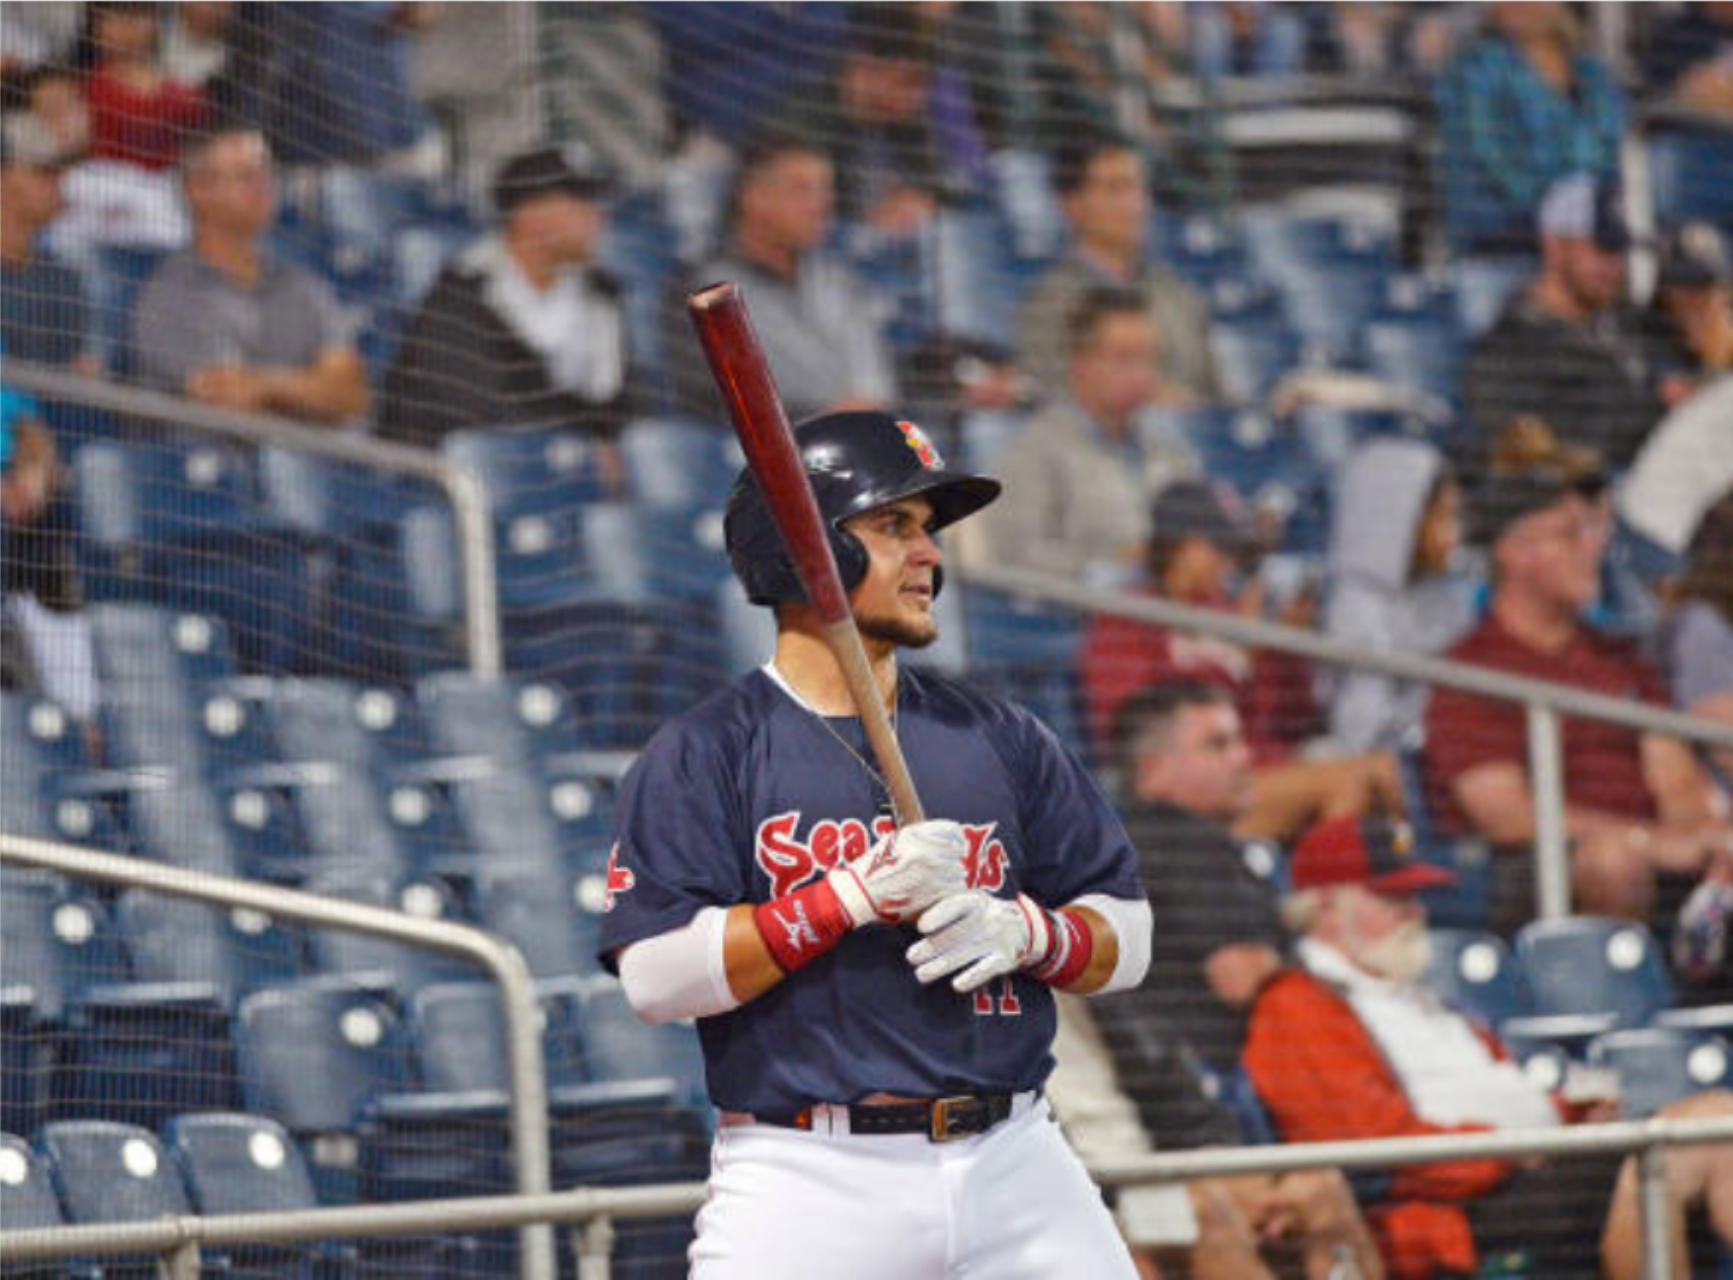 Pierce: Michael Chavis Is Back and Better Than Ever